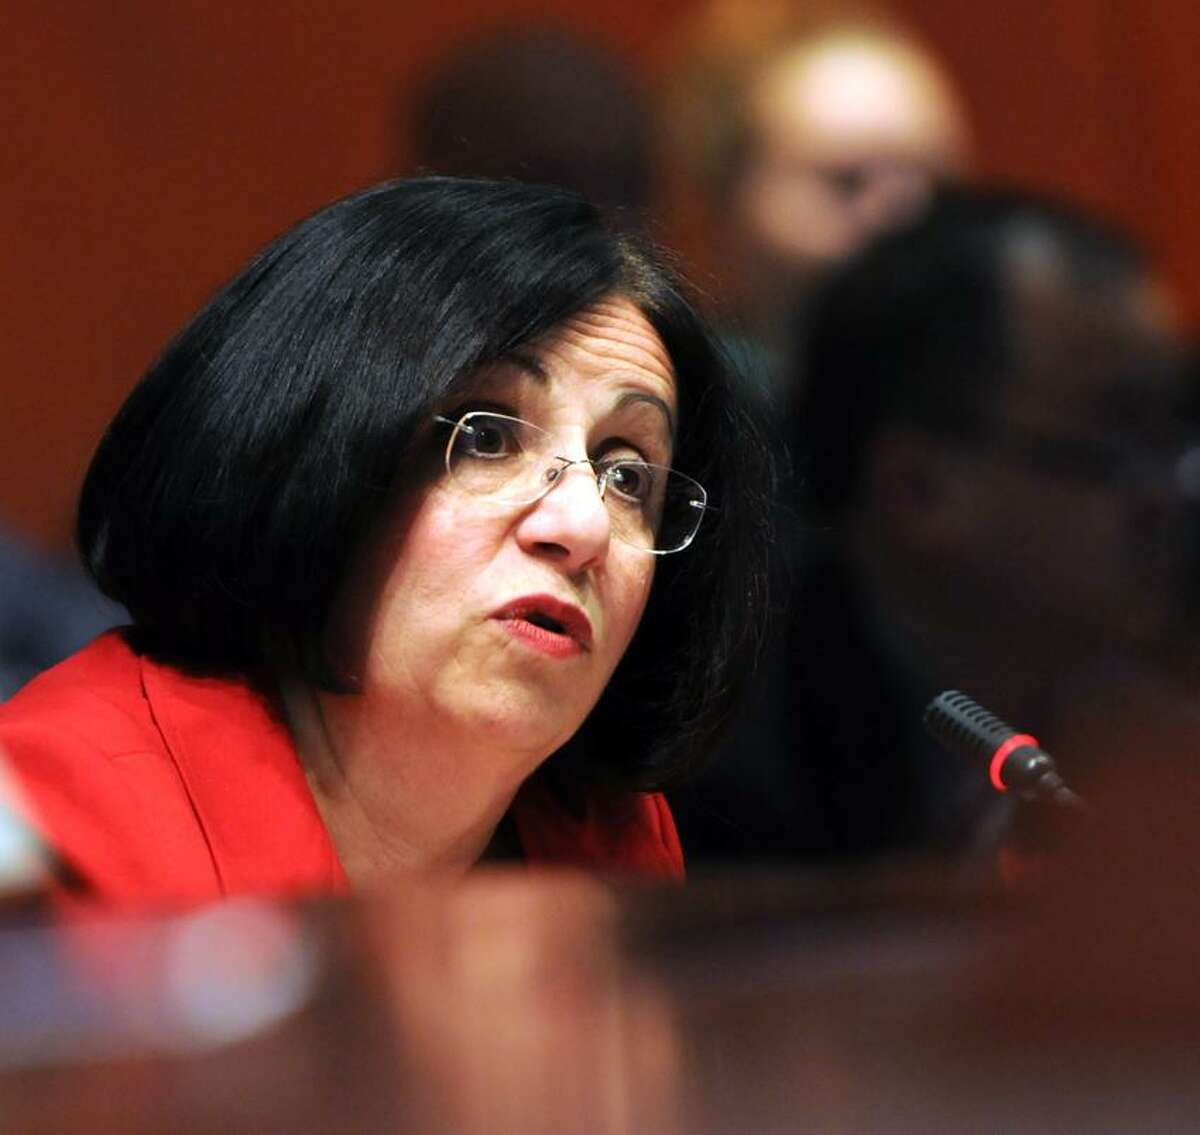 State Senator Toni Boucher, R-Wilton, an outspoken critic of legalizing marijuana, testifies during a Judiciary Committee public hearing at the State Capitol Wednesday 3/7/12 on H.B. No. 5389, an act to permit the palliative use of marijuana. Photo by Peter Hvizdak / New Haven Register